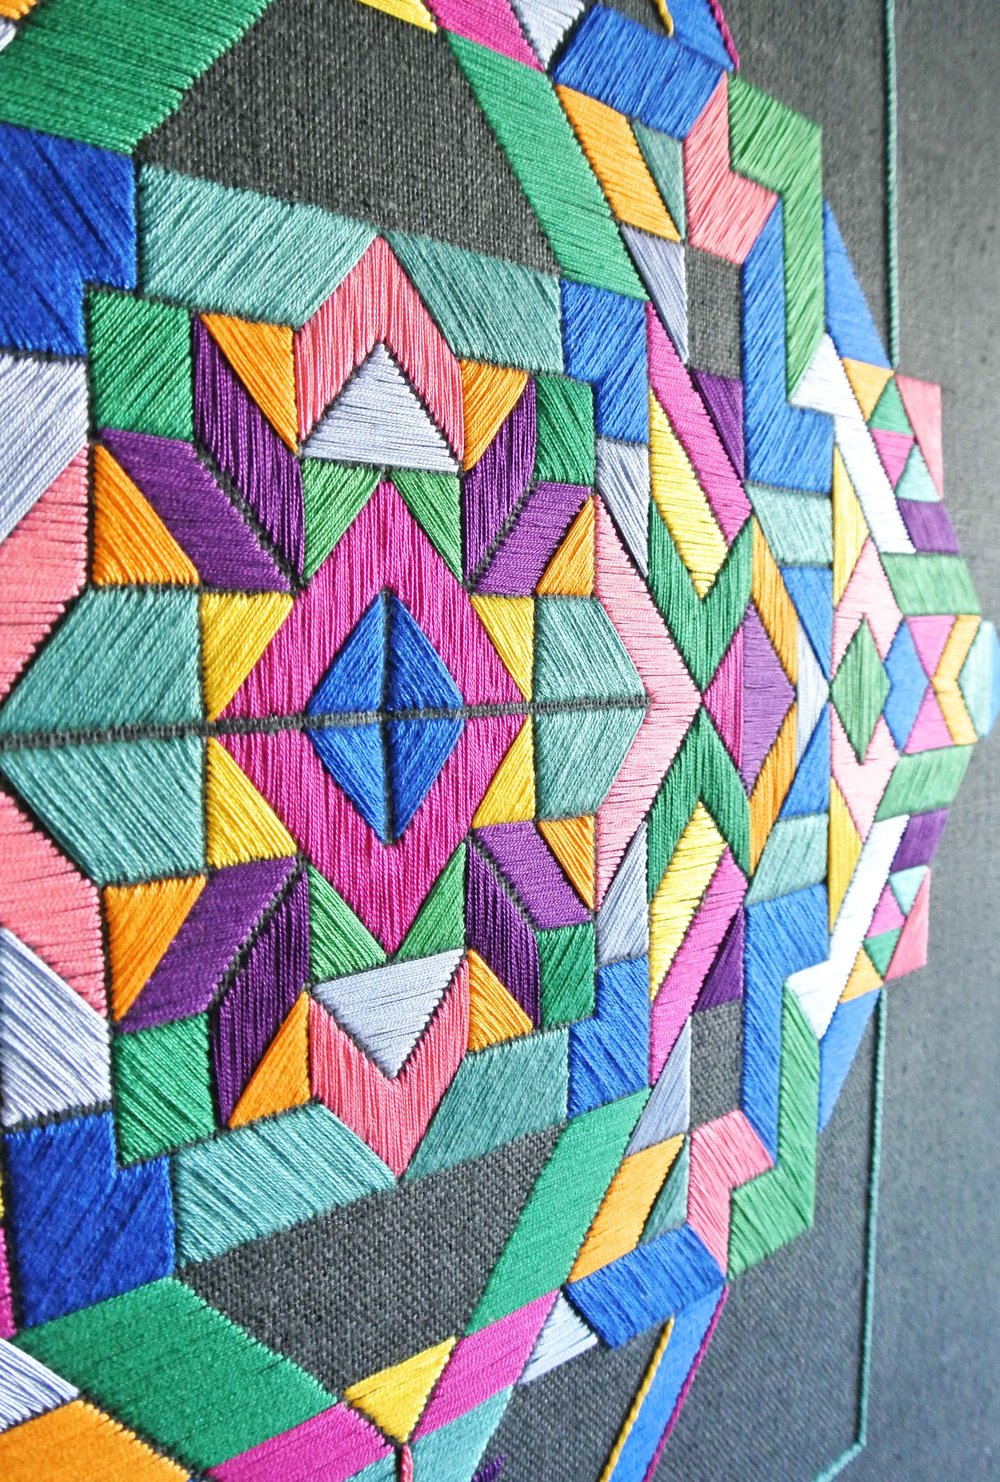 Zuzana Lalikova - Born in Slovakia and educated in the UK, Zuzana Lalikova uses traditional Slovakian embroidery techniques to produce large scale contemporary wall hangings. Geometrics and colour are a recurring theme through out the collections creating contemporary wall art for interiors and public spaces. Zuzana has previously been invited to produce live embroidery installations for The Courtauld Gallery and Animali Domestici Gallery.